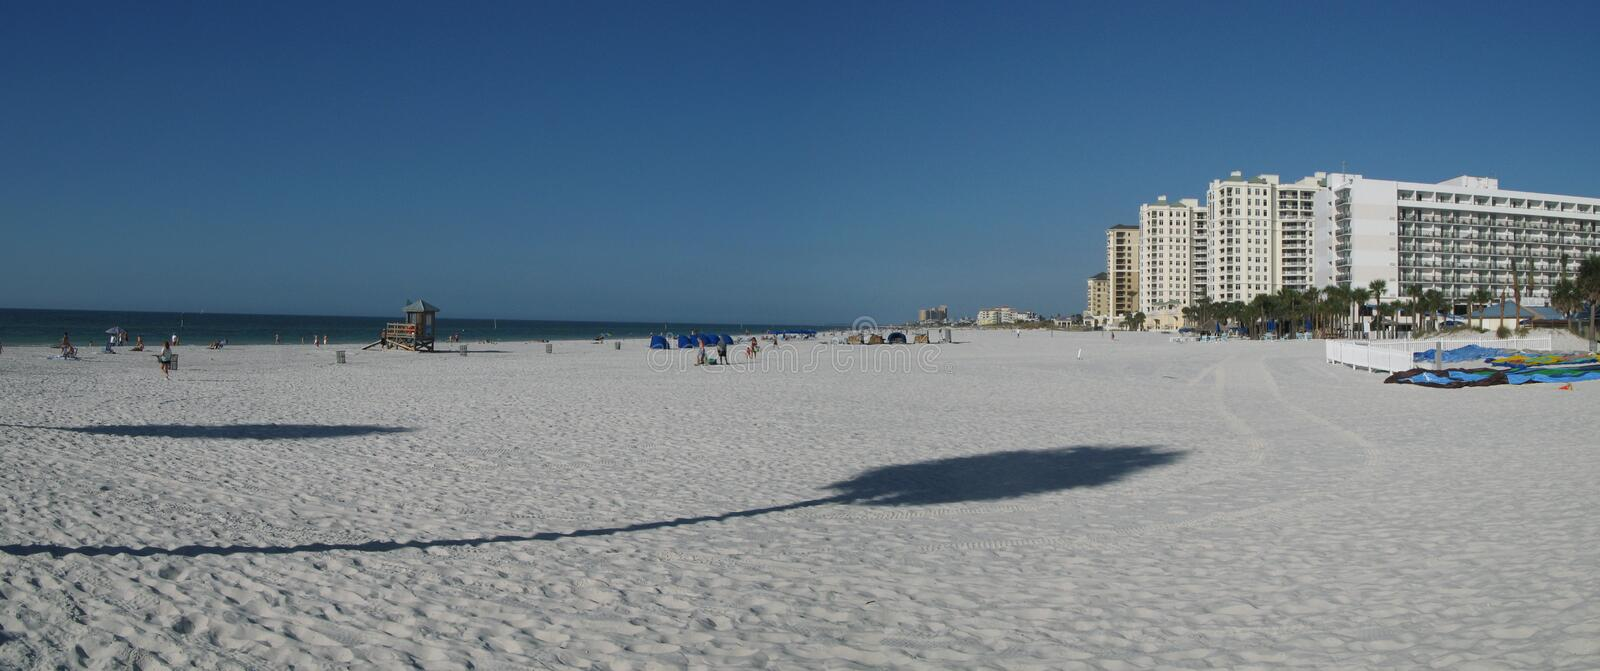 Florida Clearwater Beach. Panoramic of Clearwater beach in Florida stock image